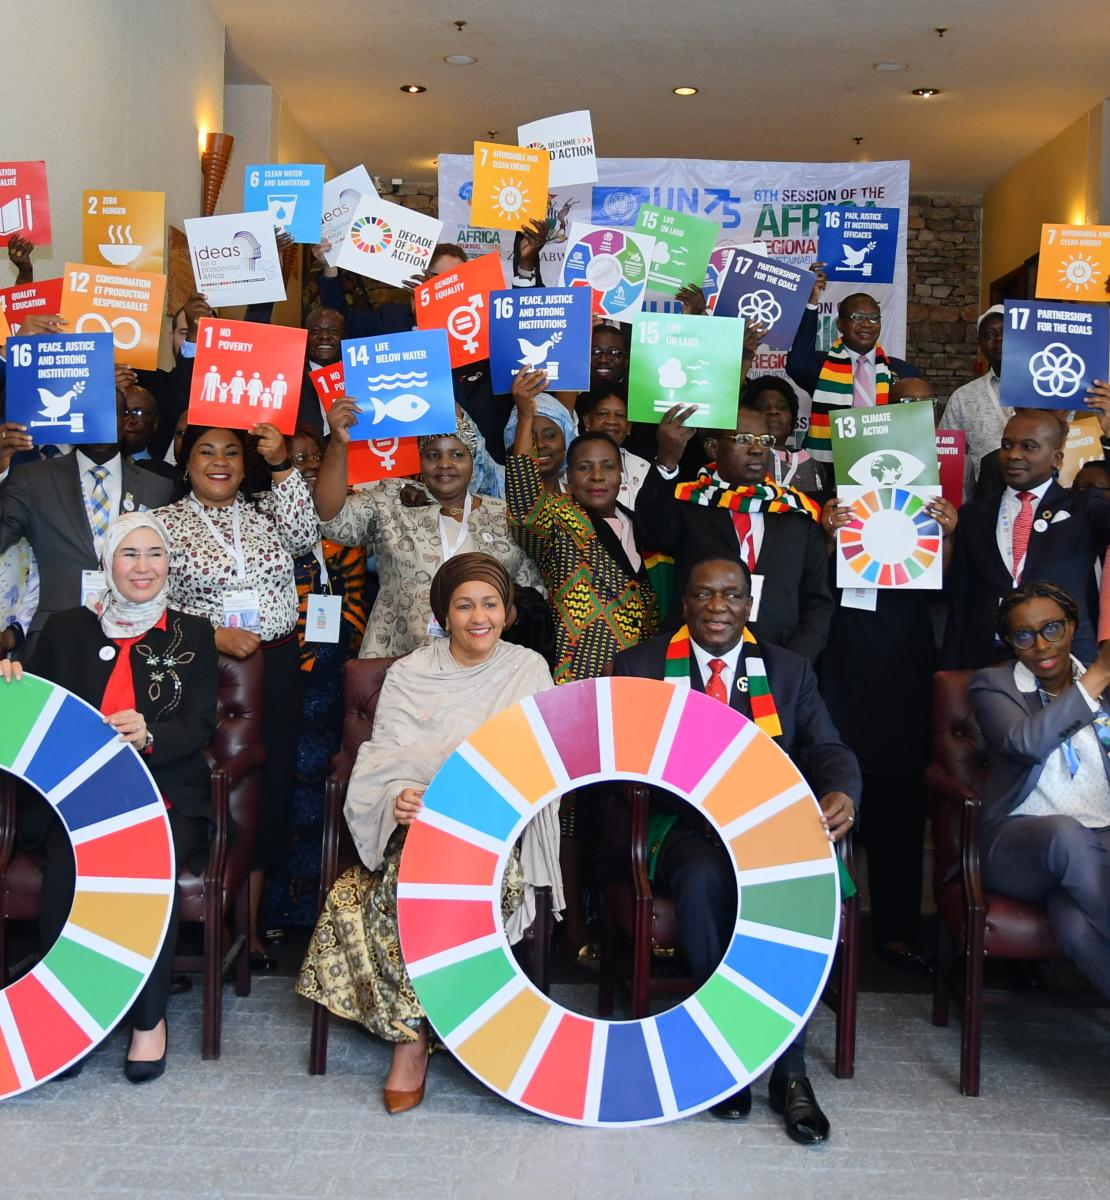 Shows DSG sitting with Resident Coordinators and colleagues holding SDGs signage.